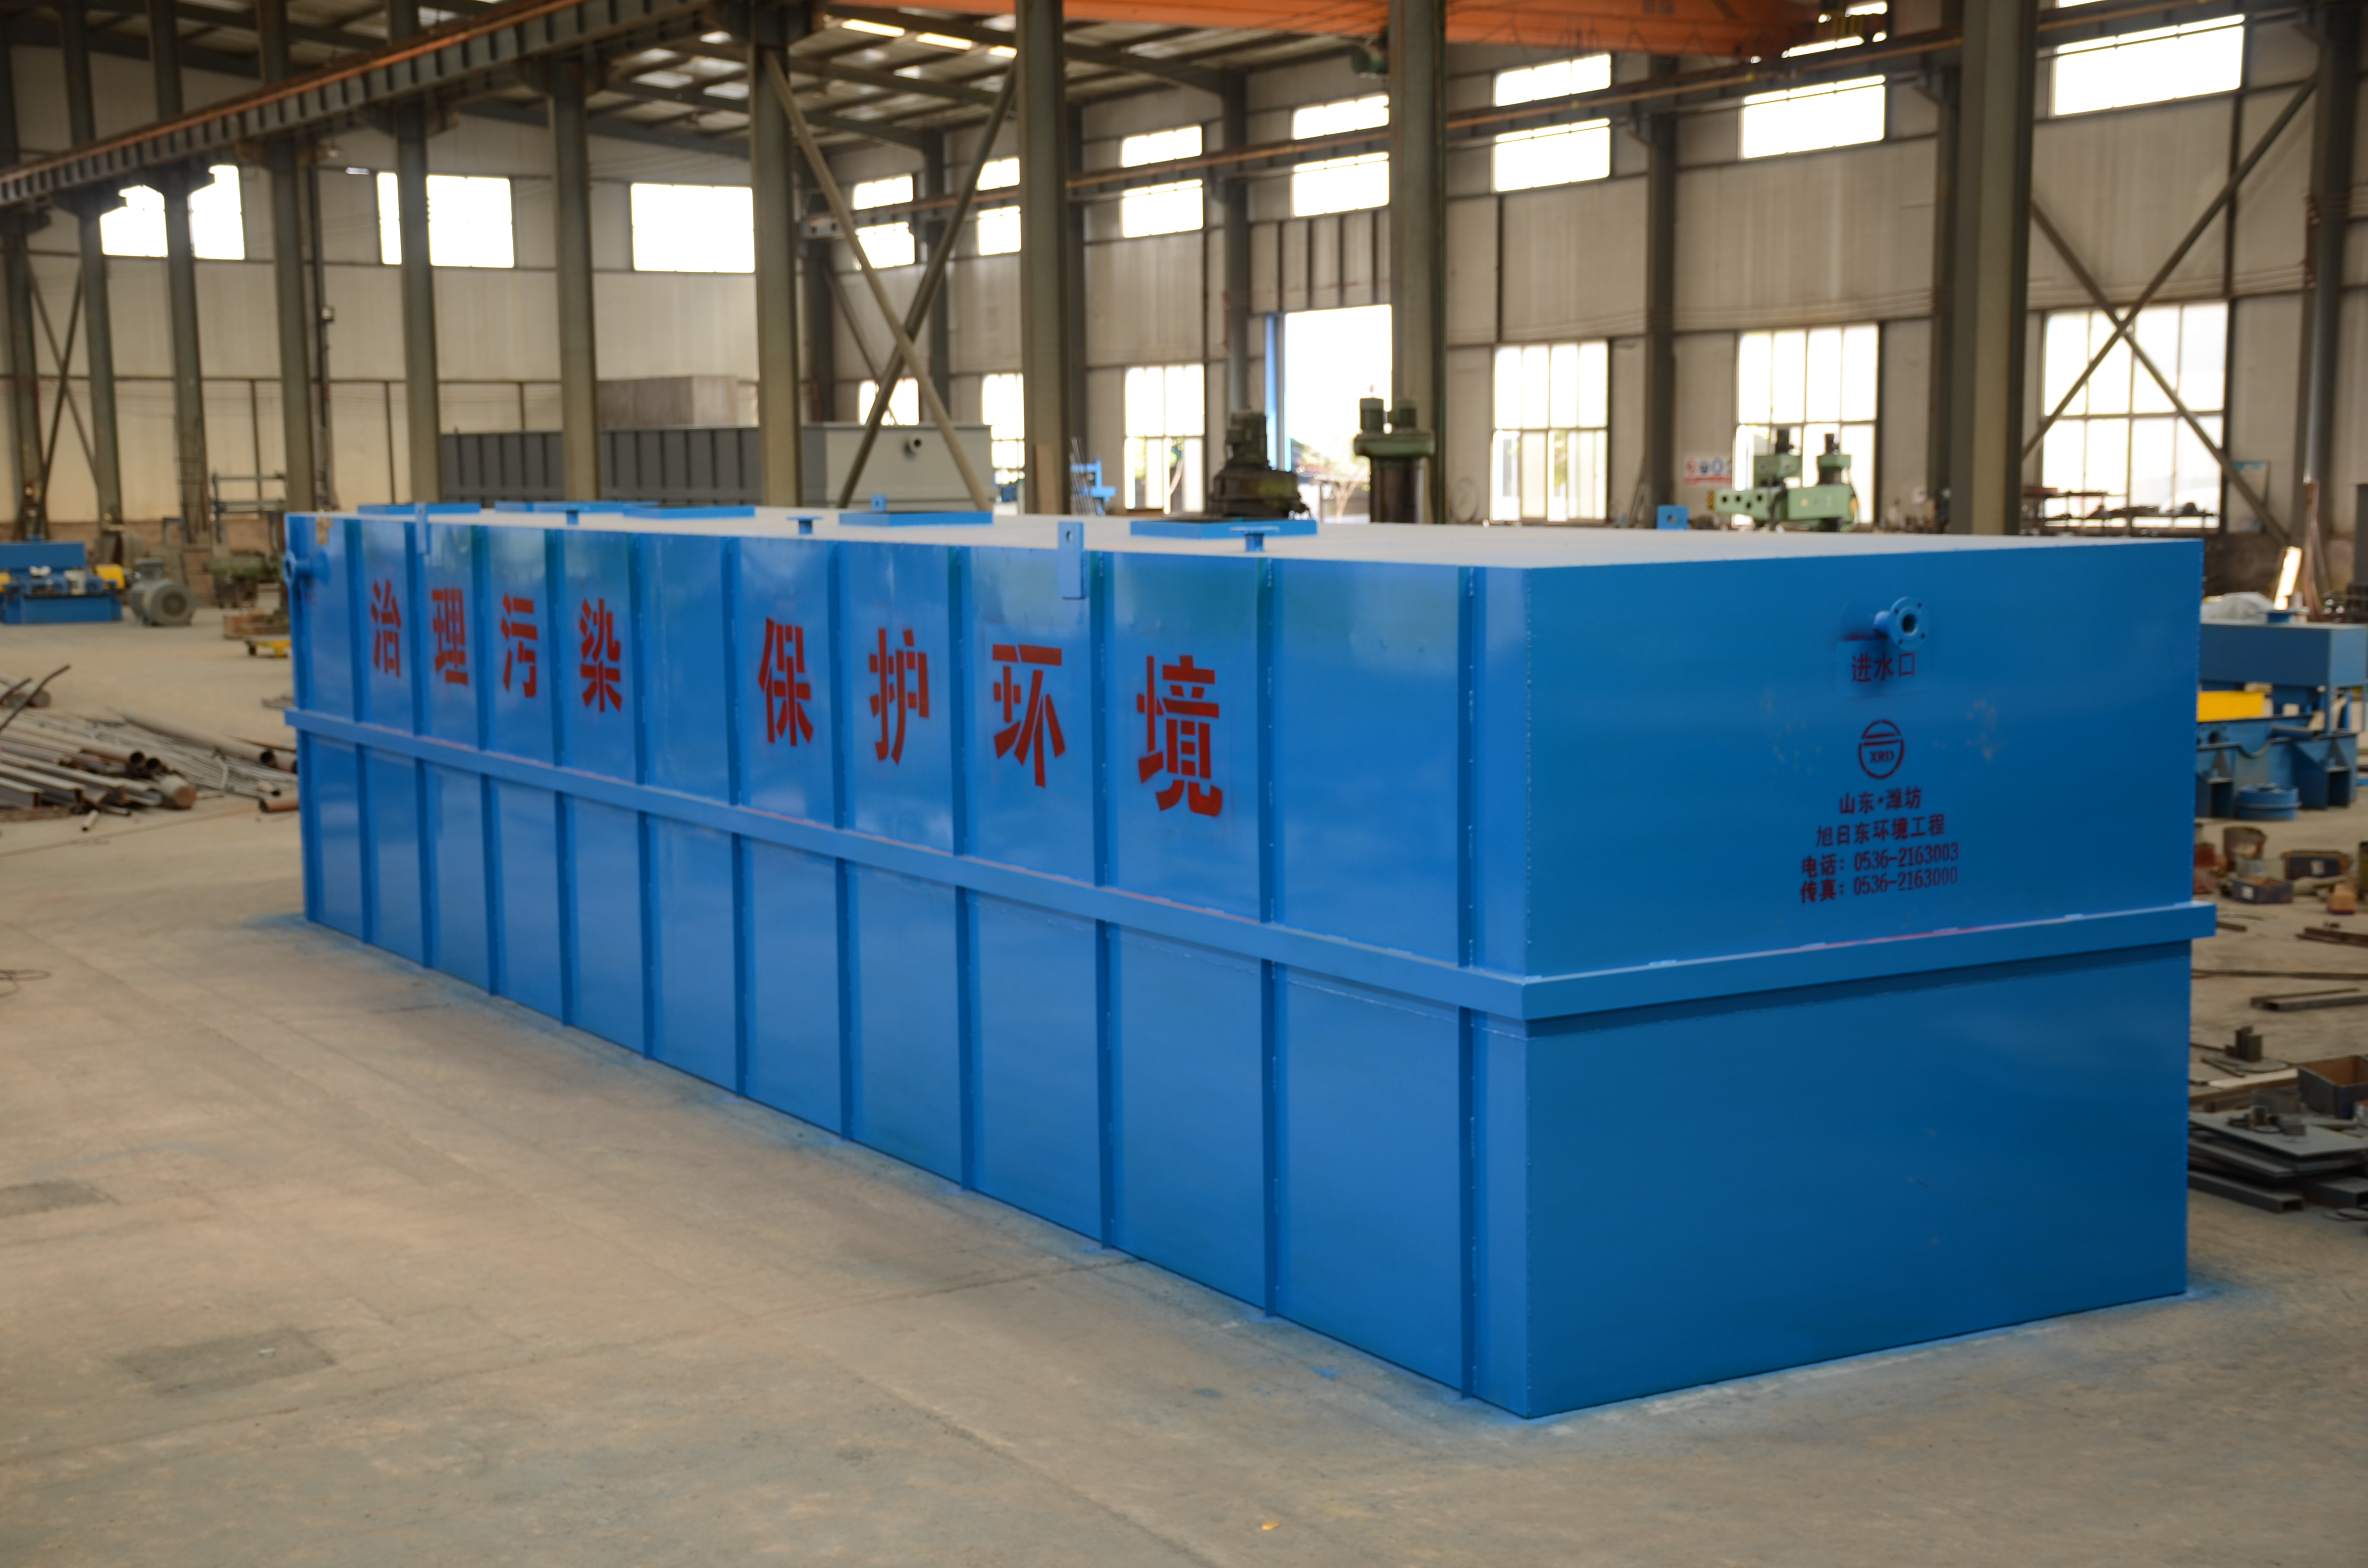 Package MBR Sewage Treatment Plant Manufacturers, Package MBR Sewage Treatment Plant Factory, Supply Package MBR Sewage Treatment Plant